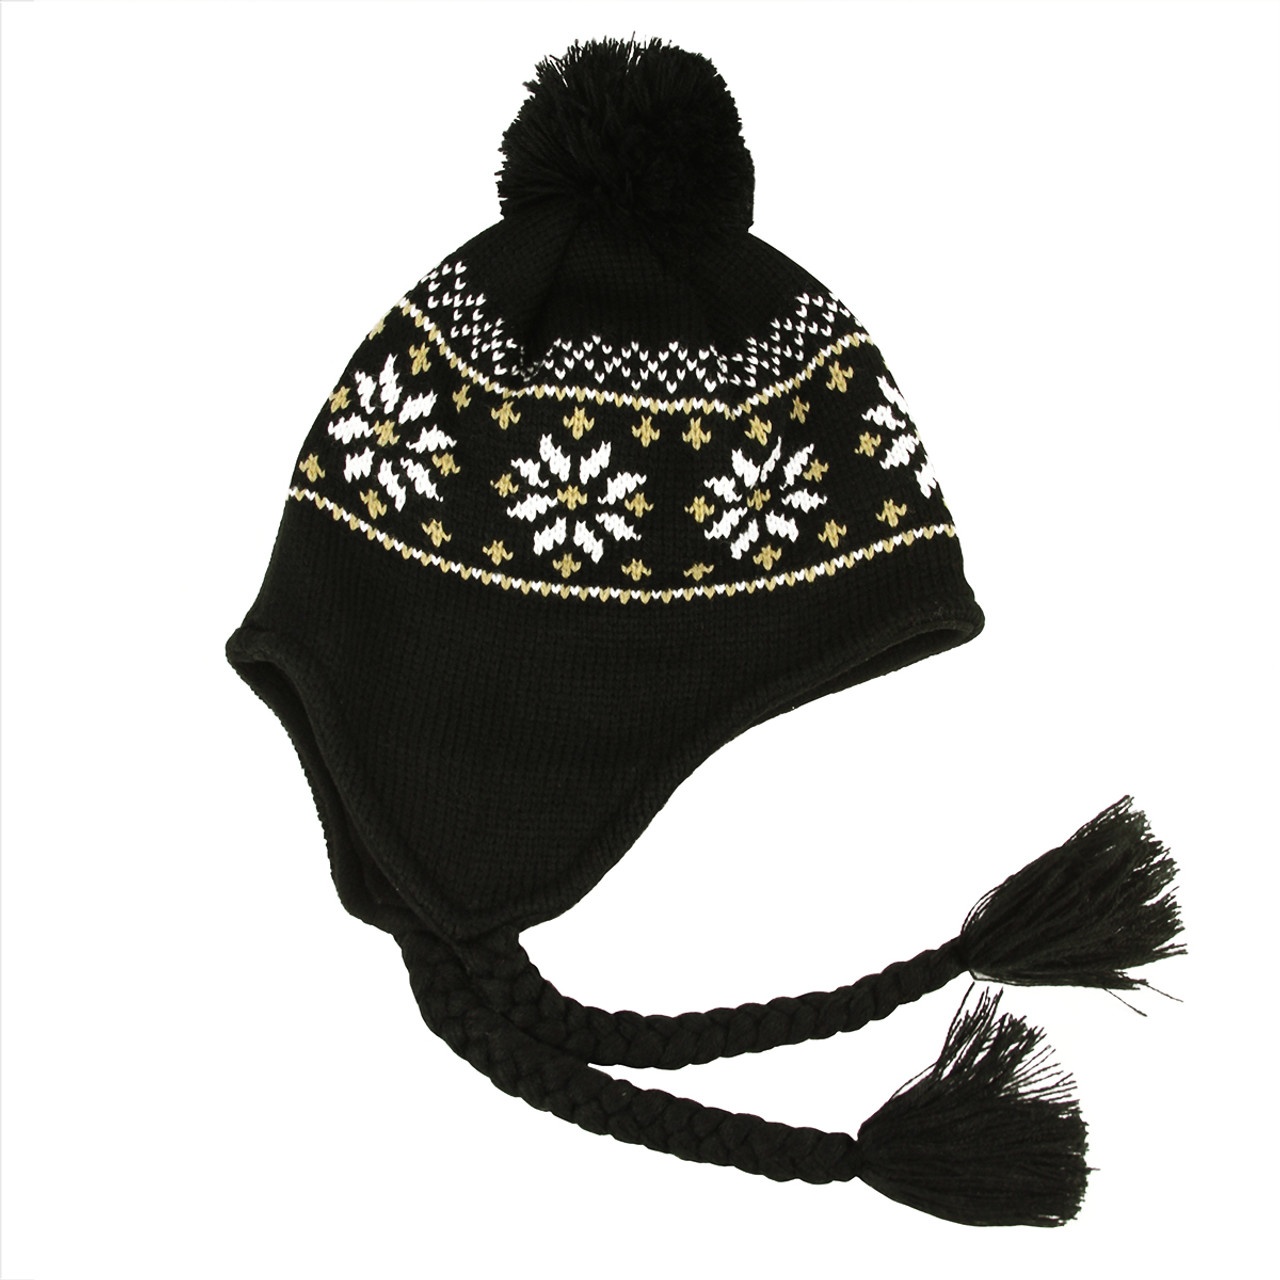 858f4e06c8b18f Unisex Black Jacquard Knit Winter Hat with Ear Flaps - One Size - 31328212